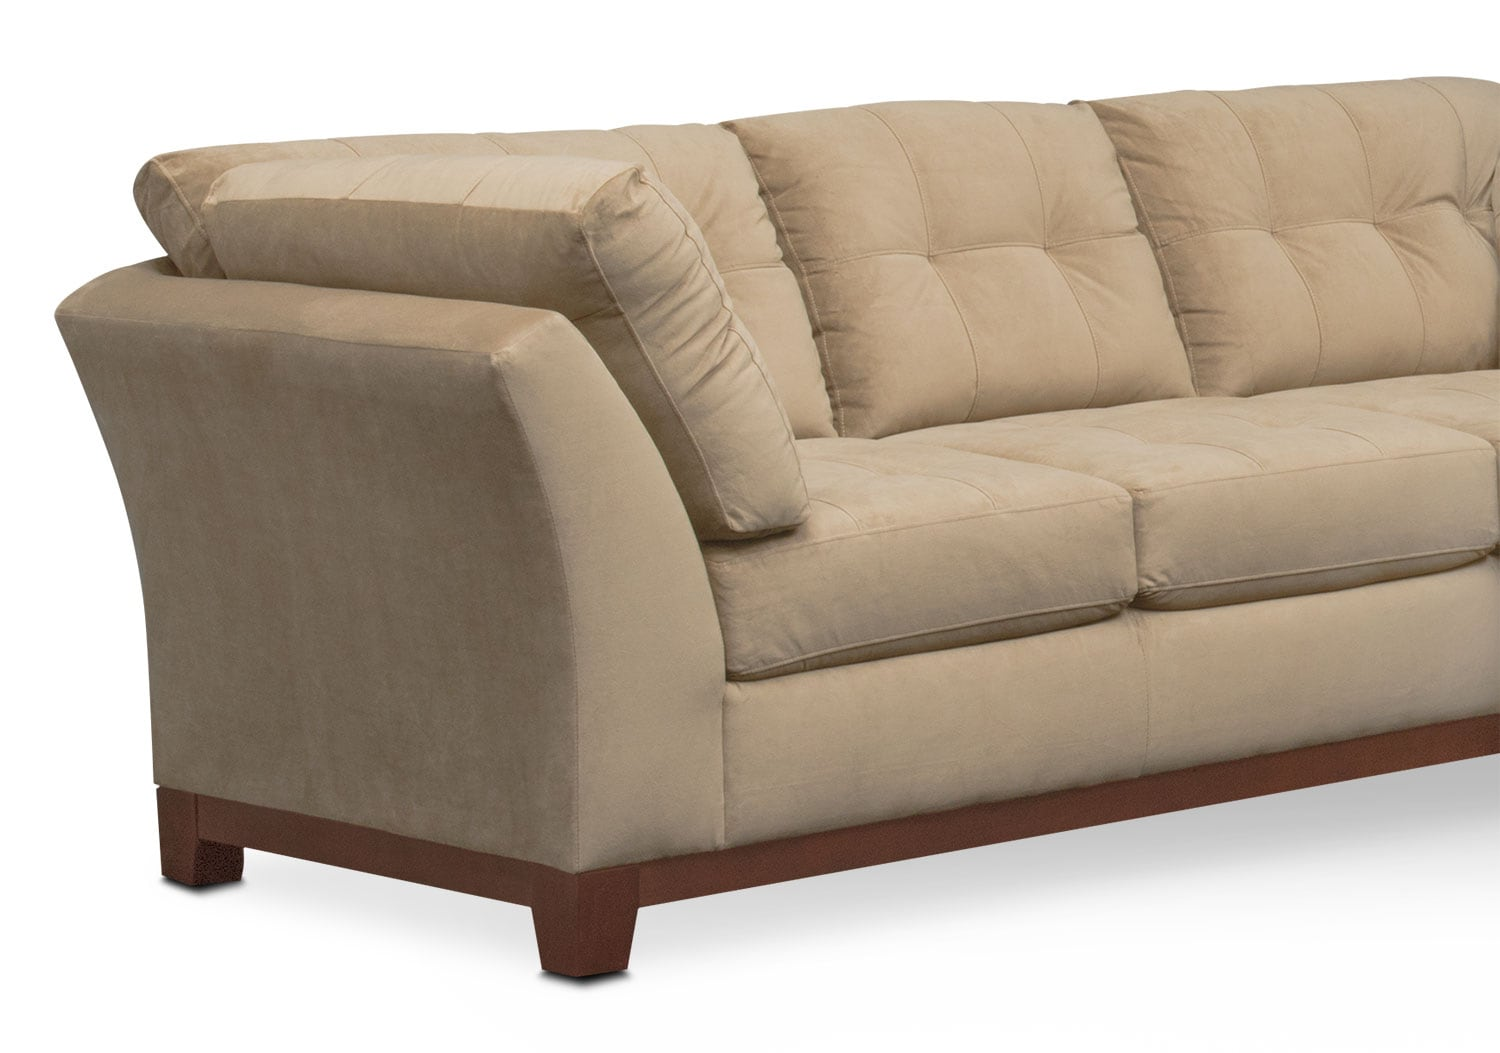 Sebring 2 Piece Sectional With Right Facing Loveseat Cocoa Value City Furniture